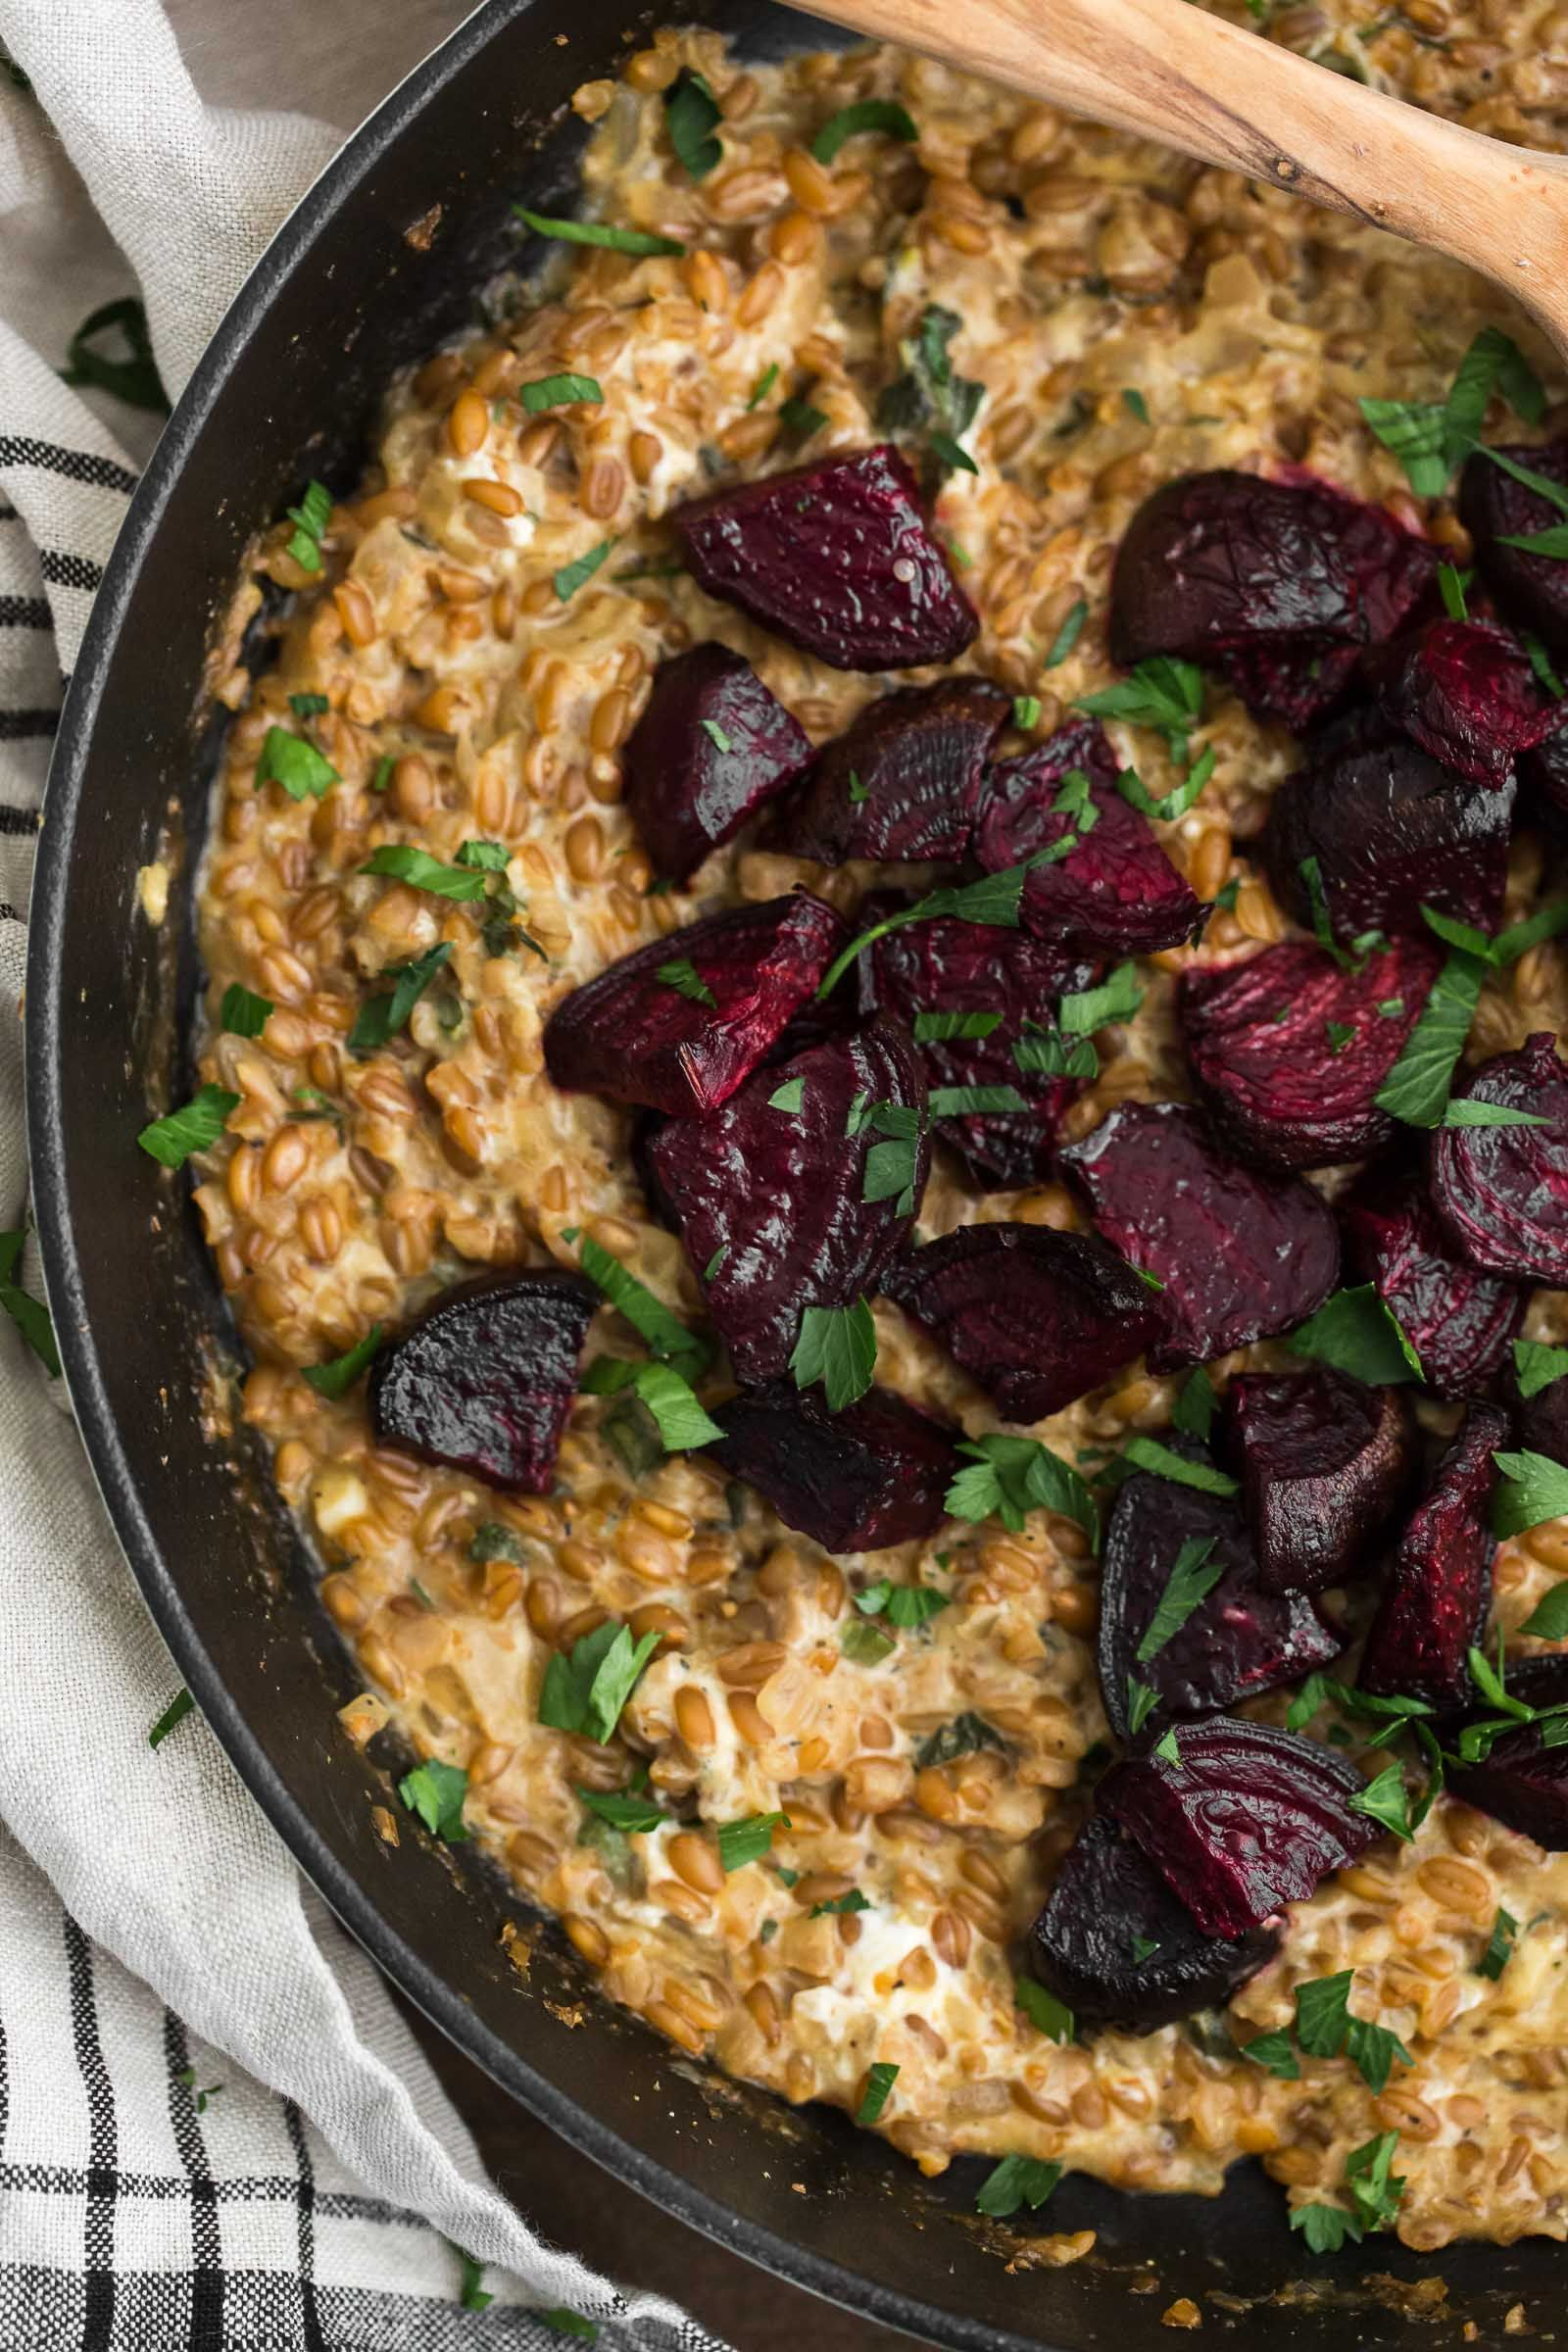 Cracked Spelt Risotto with Roasted Beets